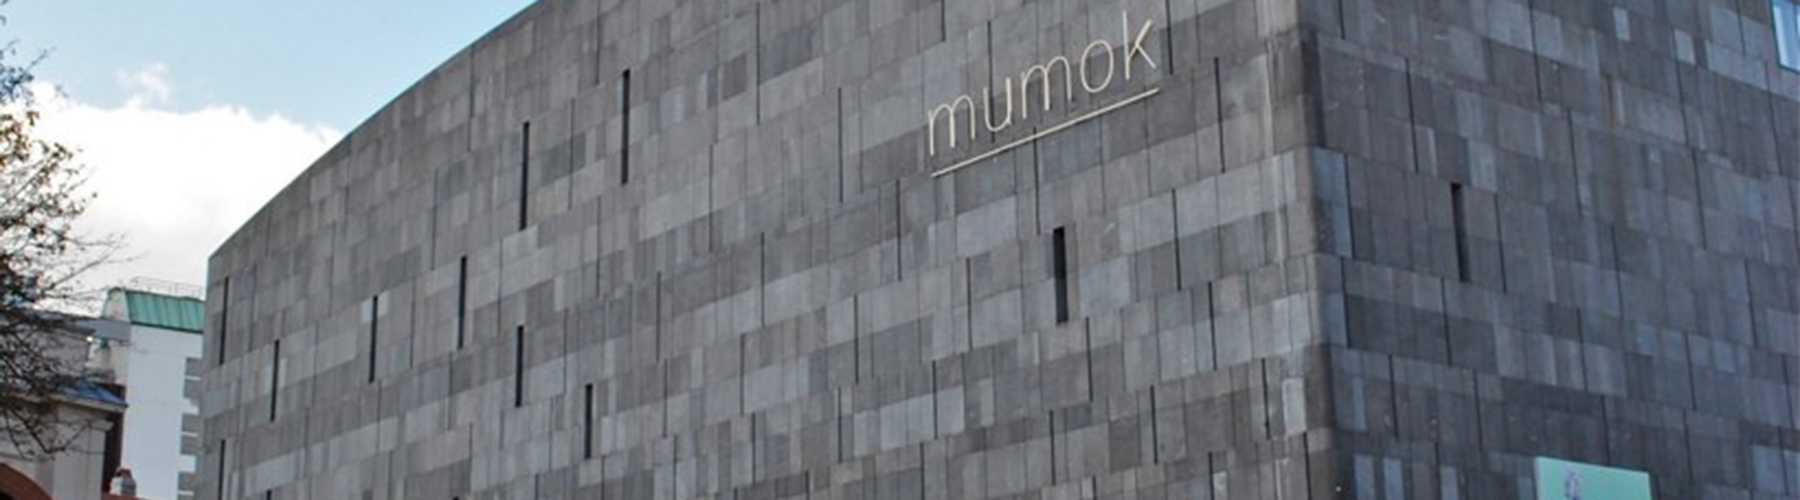 Vienna – Hotels close to Museumsquartier with MUMOK. Maps of Vienna, Photos and Reviews for each Hotel in Vienna.